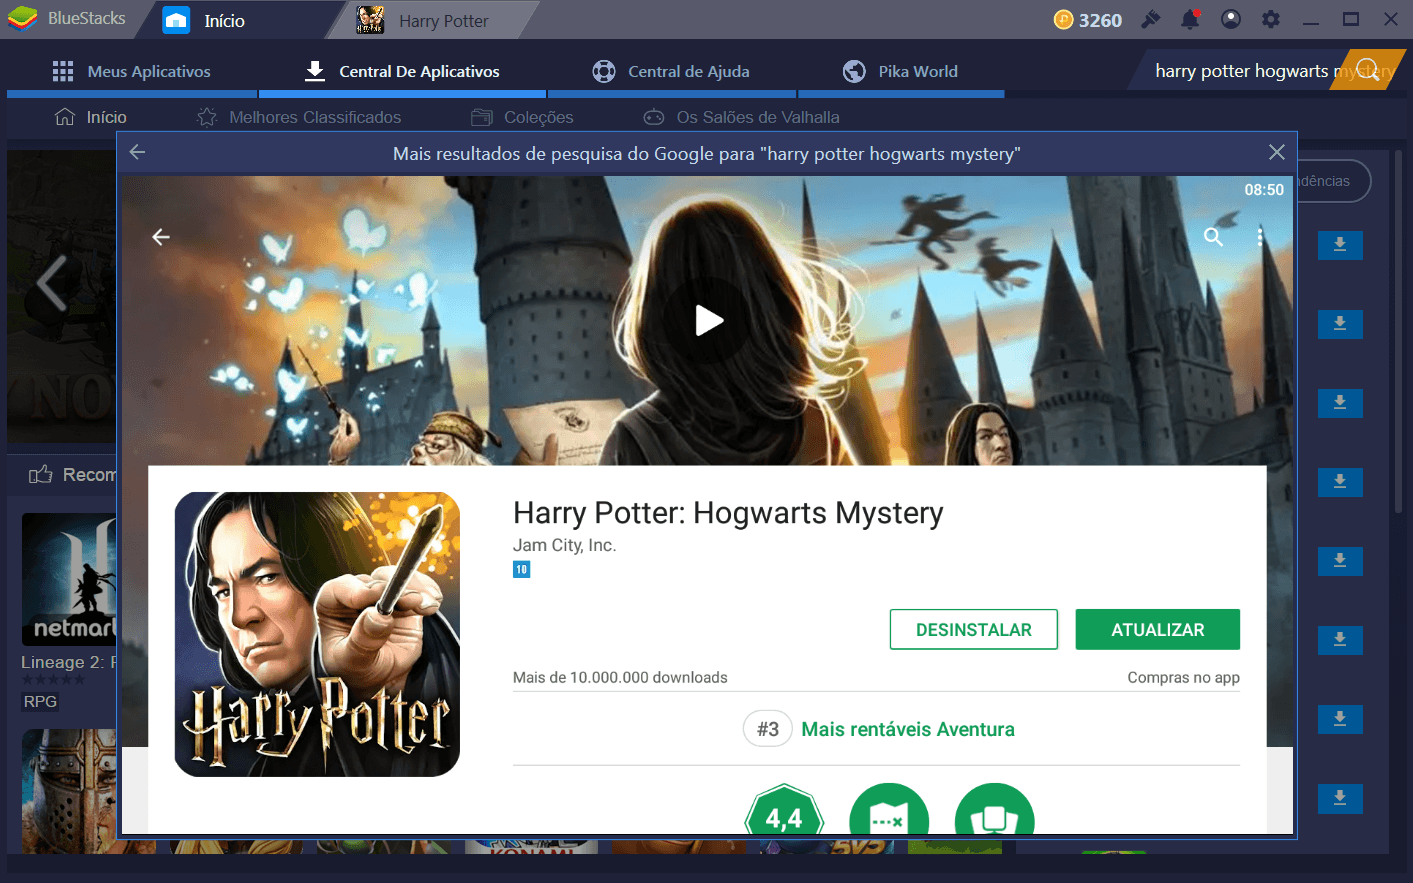 Como instalar Harry Potter: Hogwarts Mystery no Bluestacks